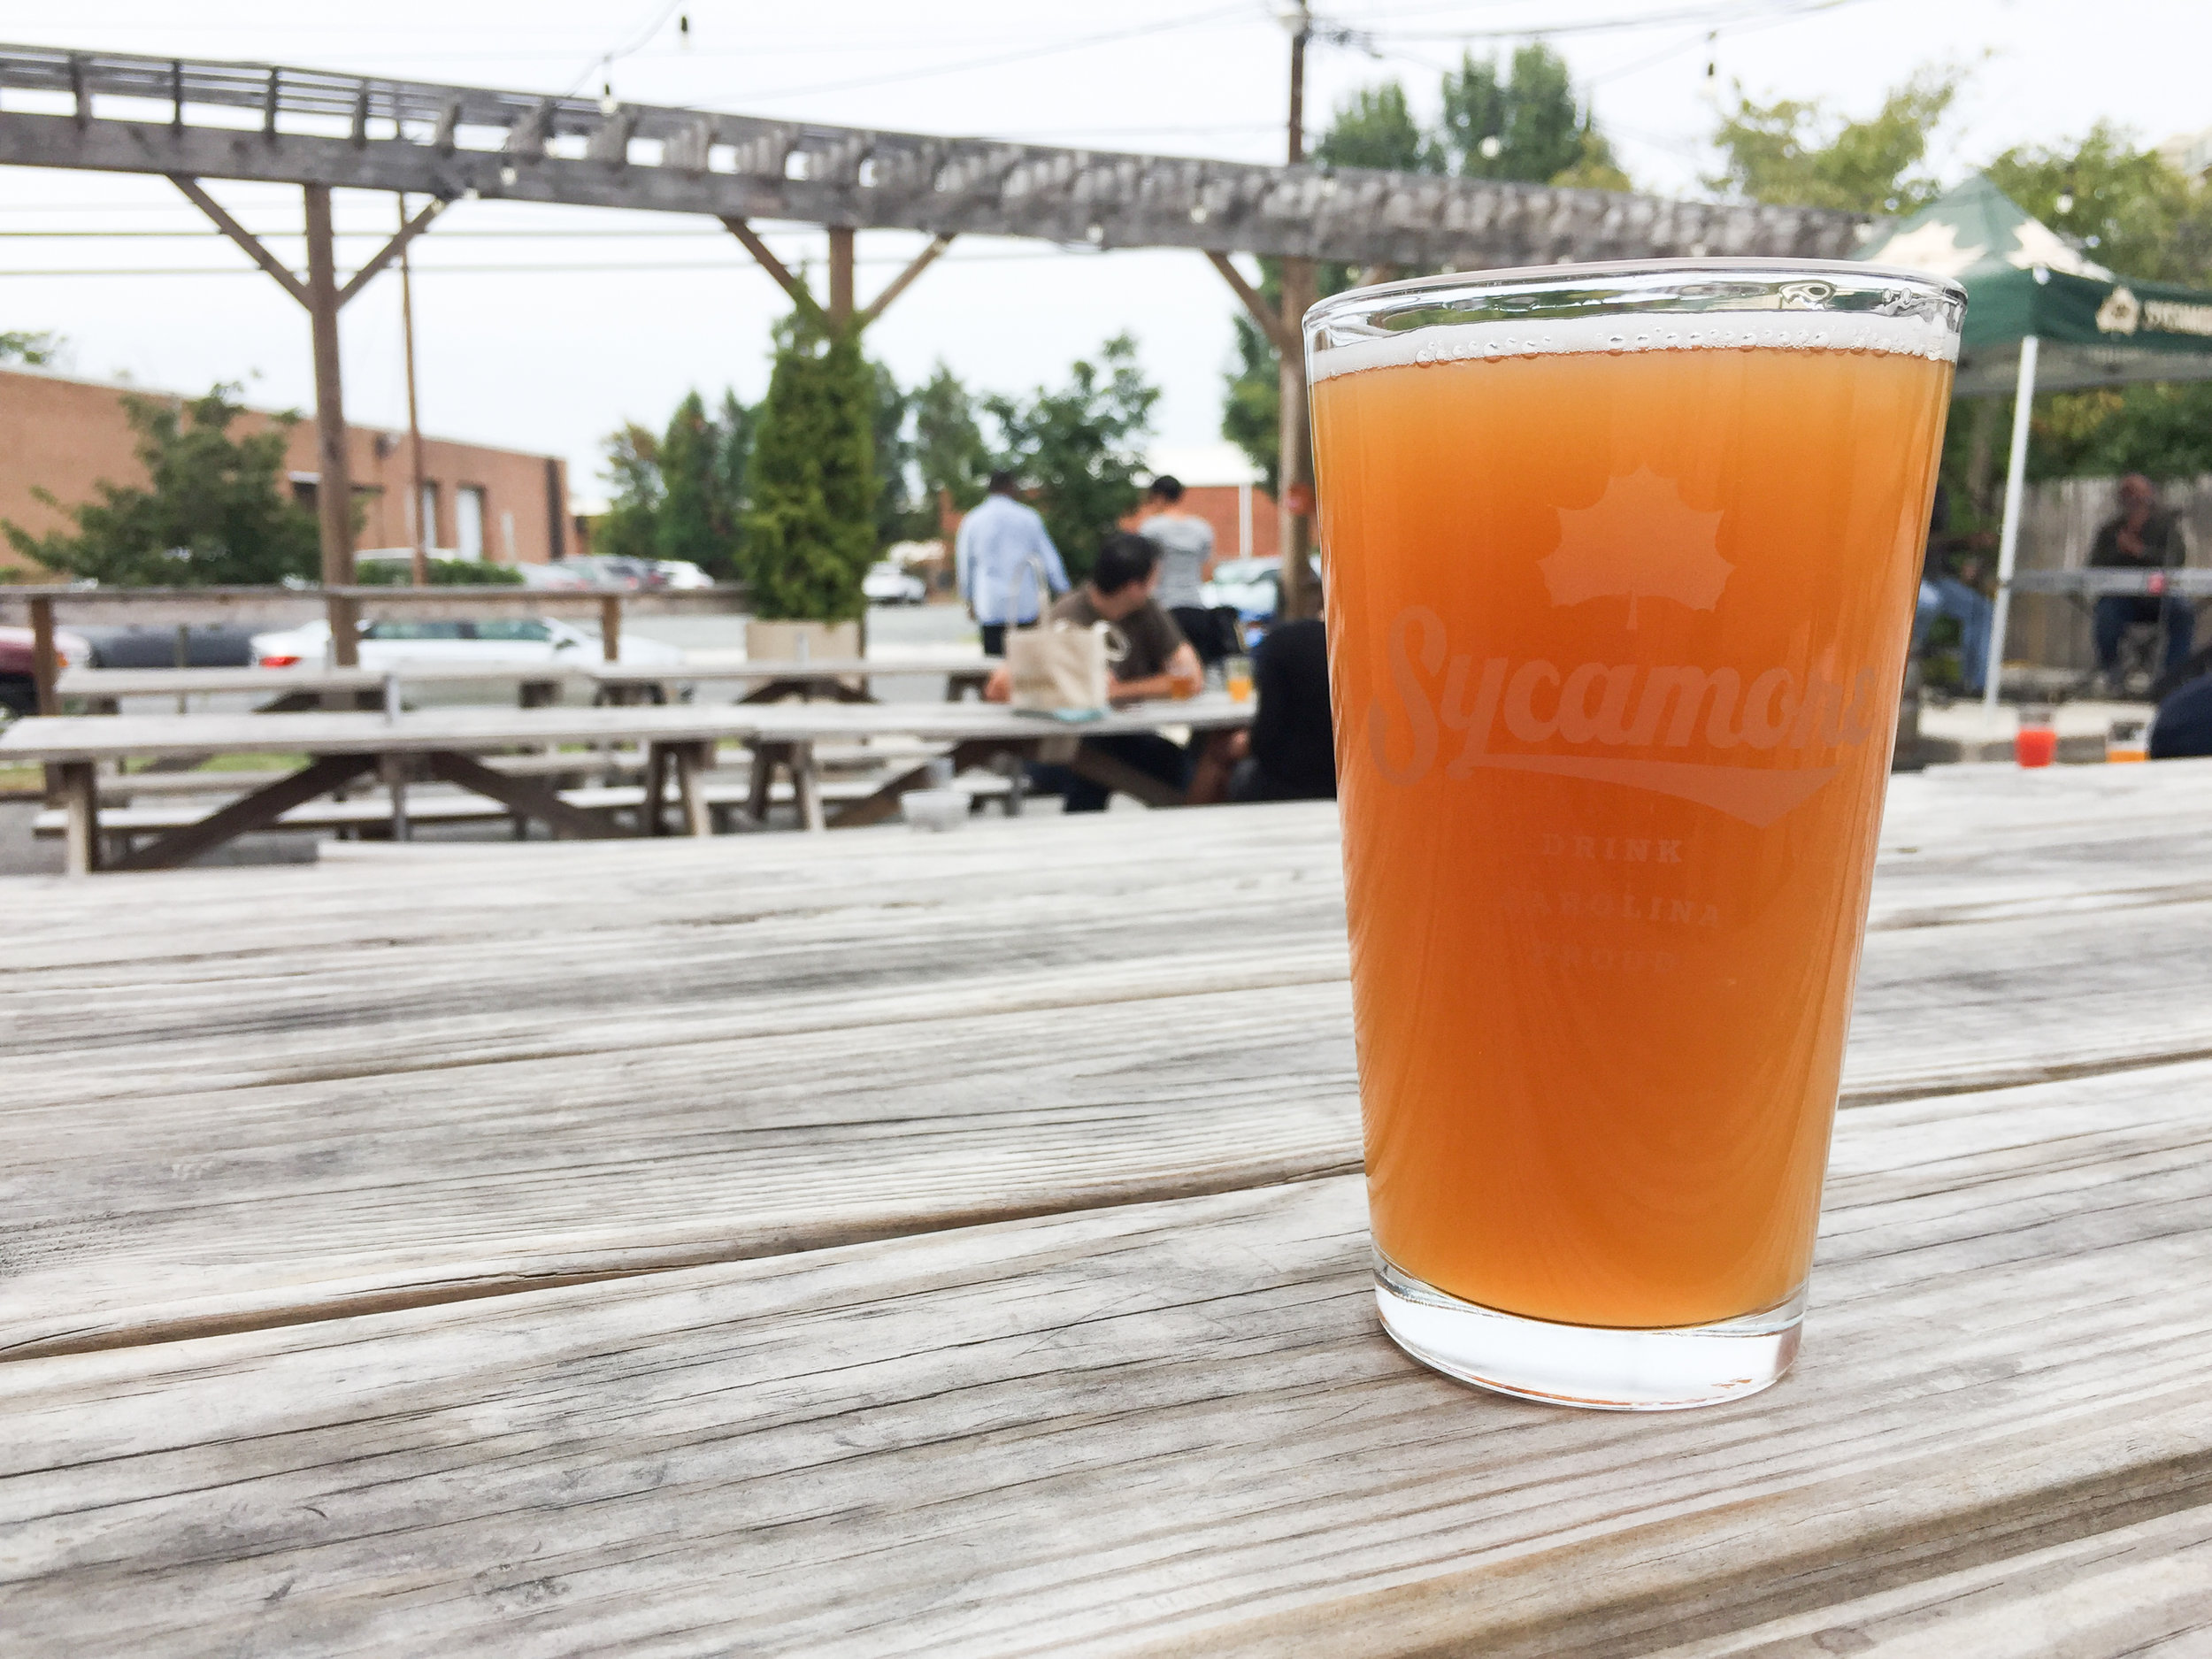 sycamore-brewing-south-end-charlotte-nc-apricot-wheat